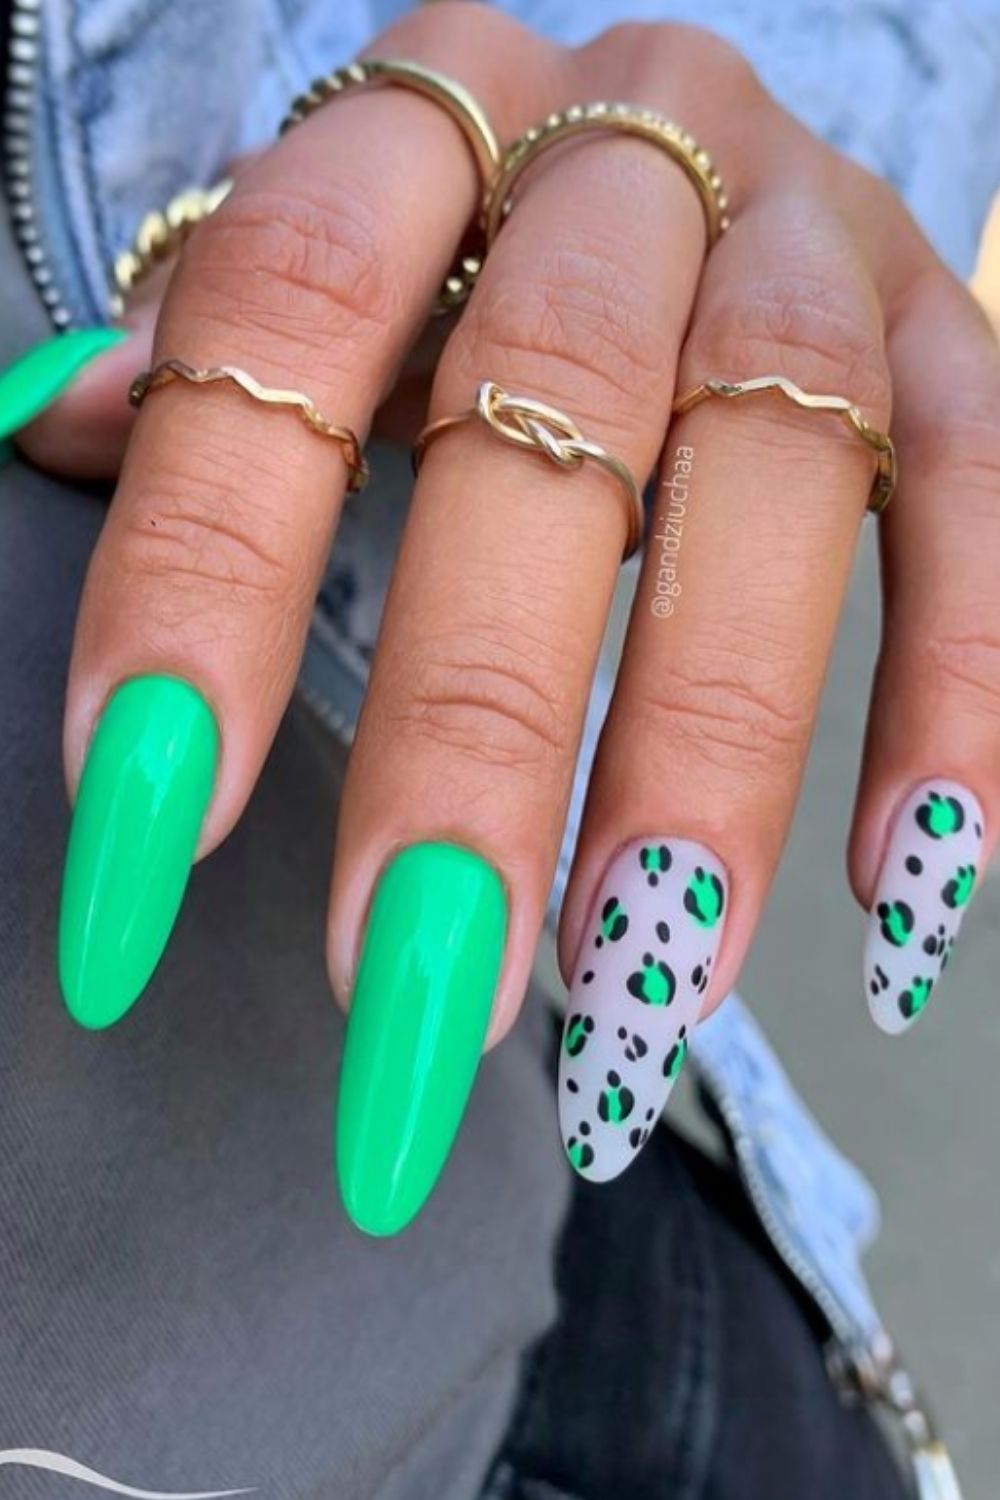 Green and pink almond shaped nails